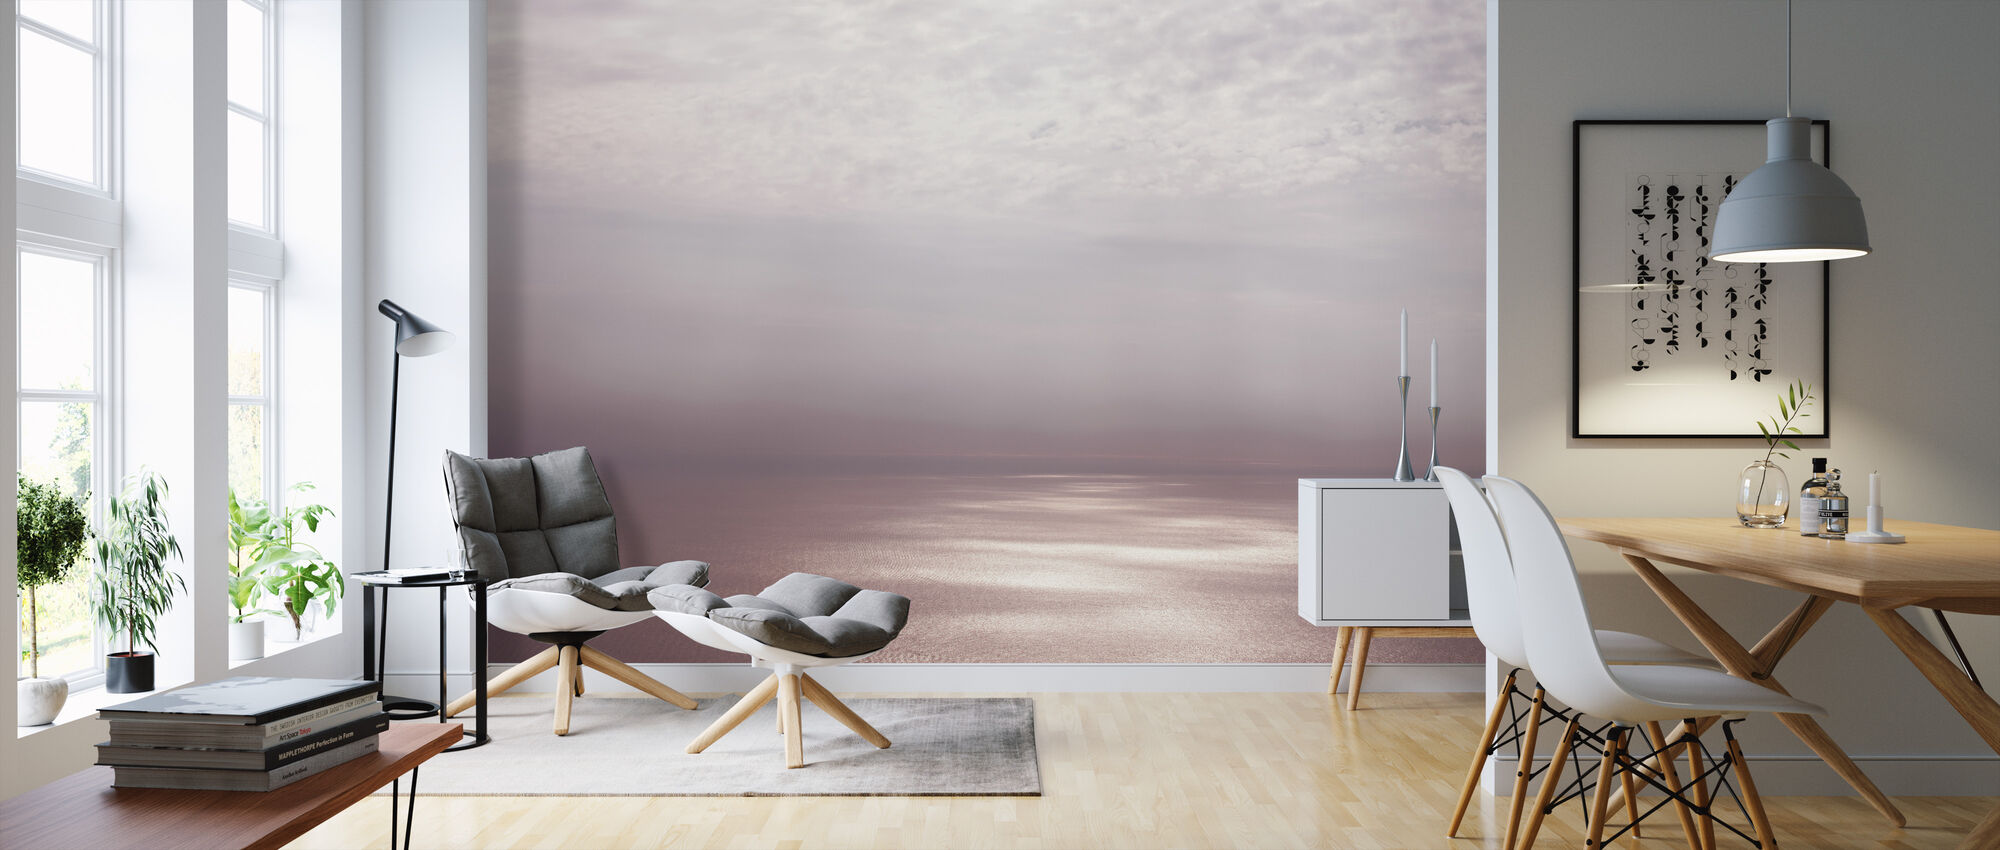 Smoke Horizon Dawn - Wallpaper - Living Room